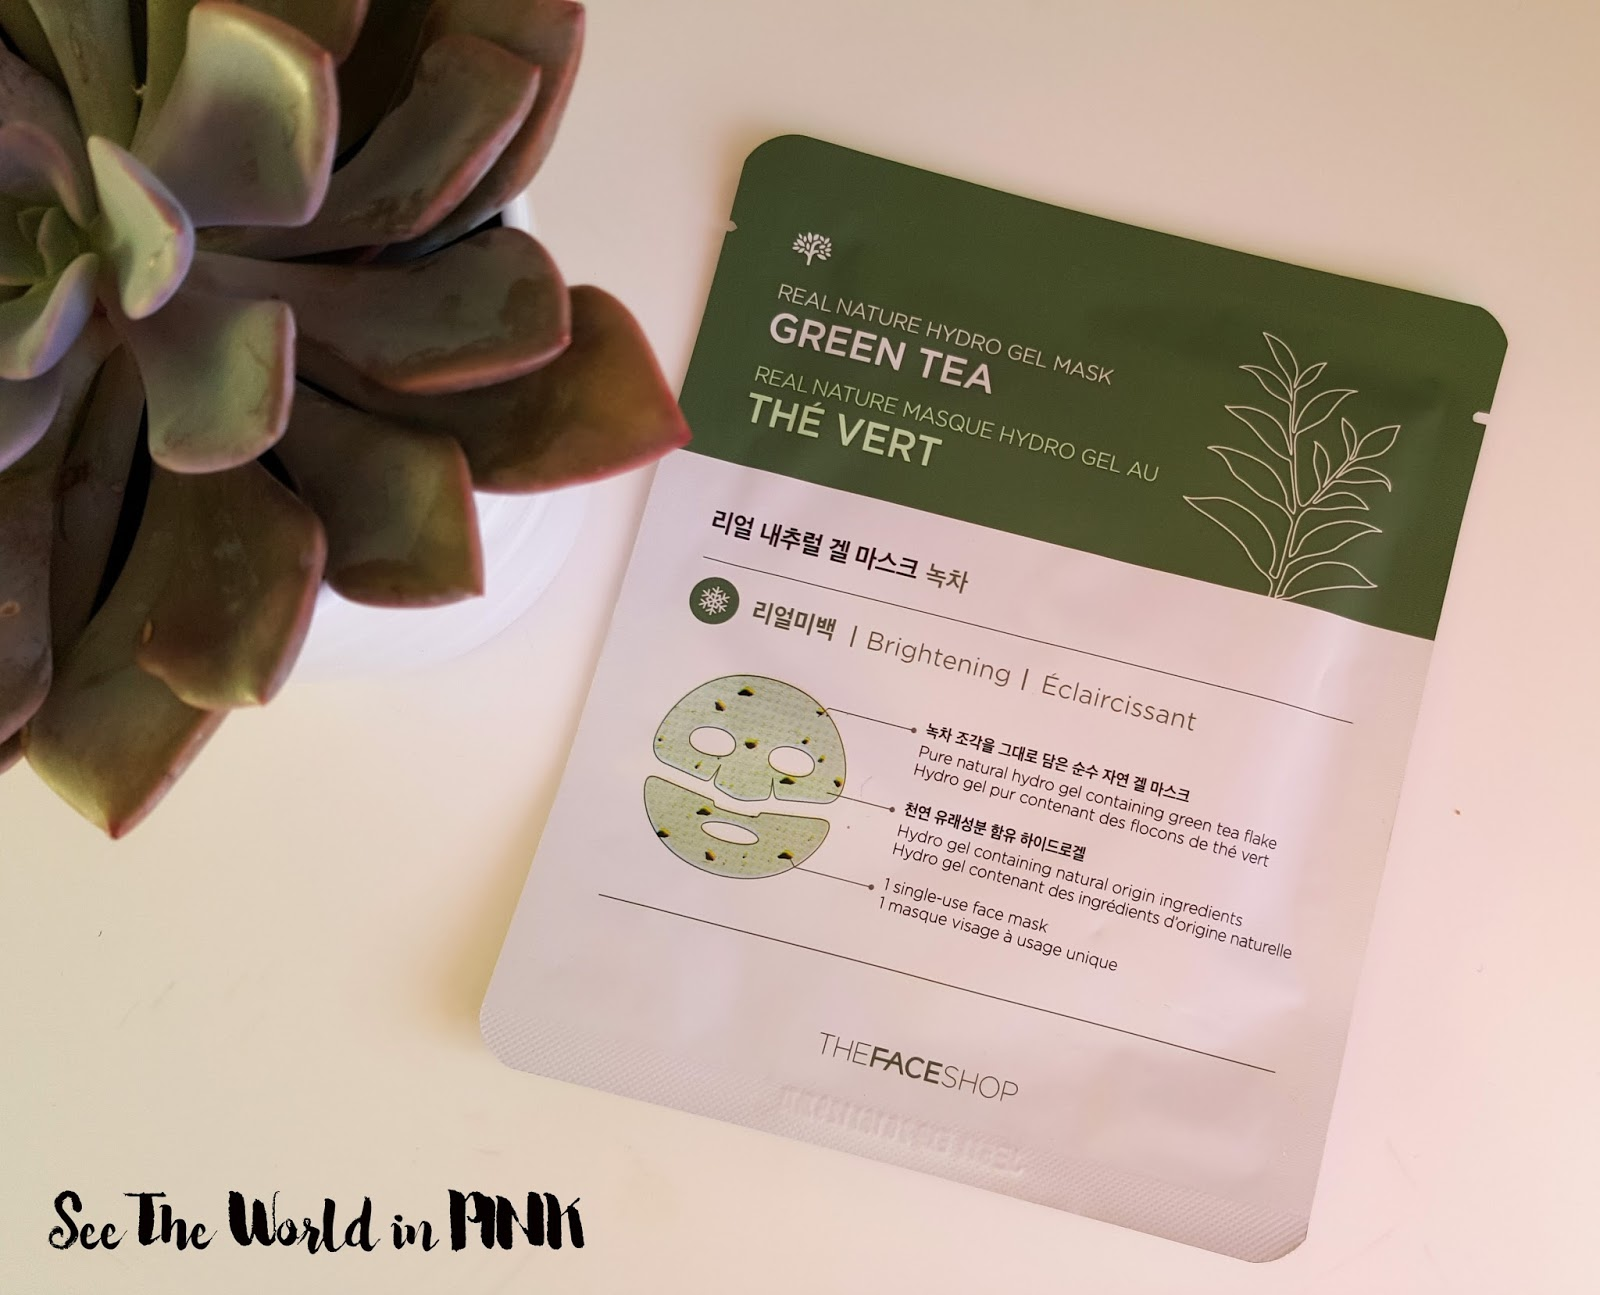 THEFACESHOP Real Nature Green Tea Hydro Gel Mask